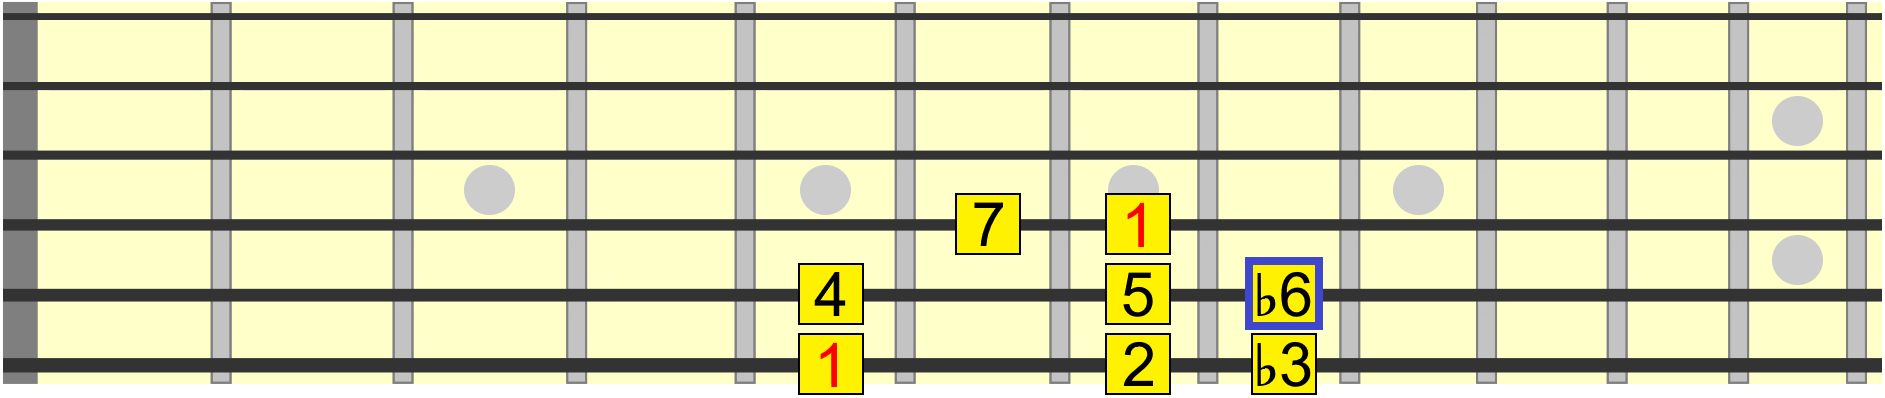 harmonic minor scale with minor 6th interval